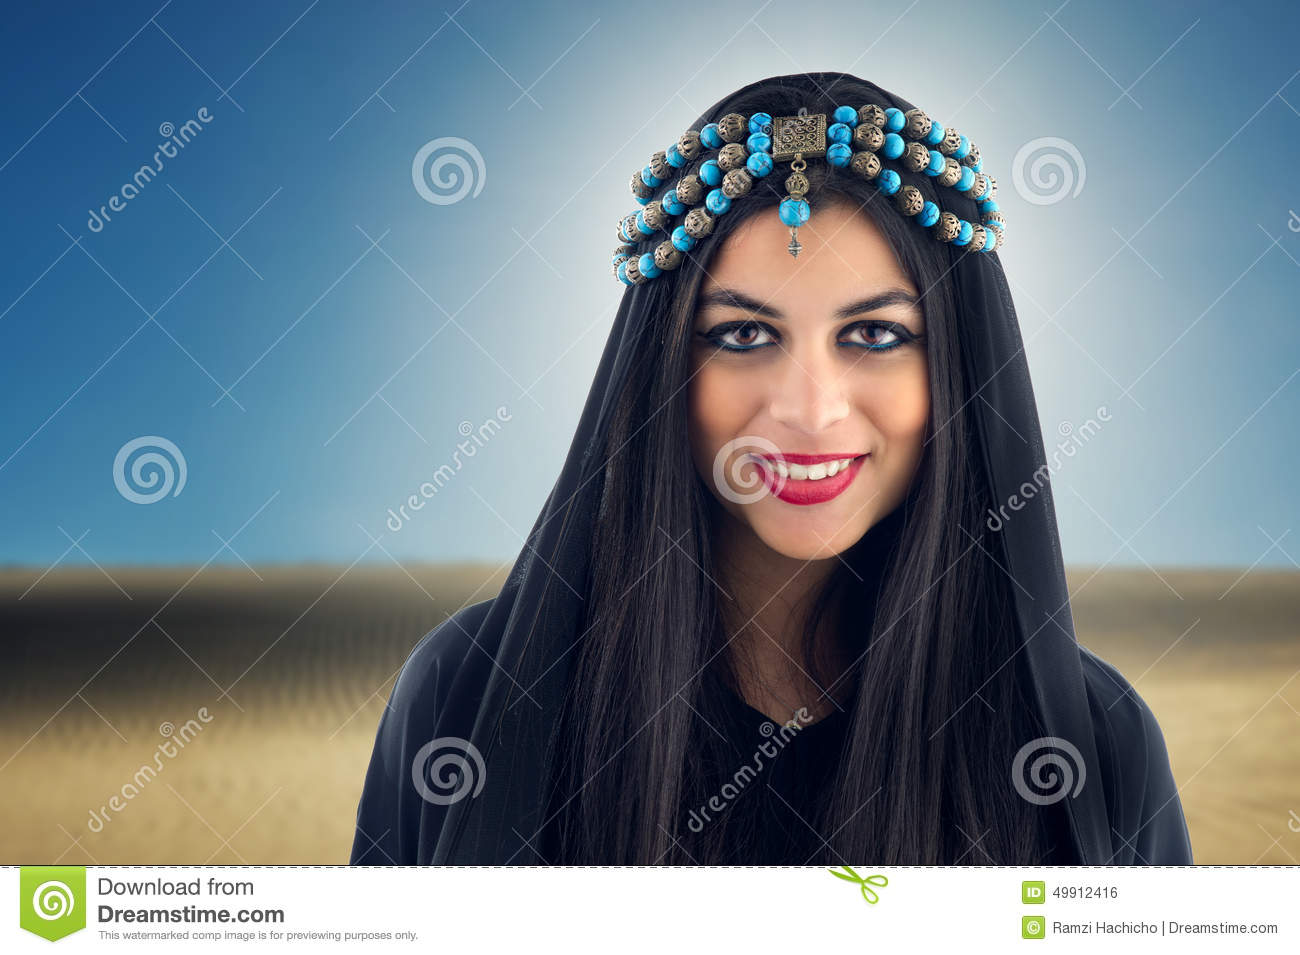 Fille Arabe fille arabe portant le foulard traditionnel photo stock - image du